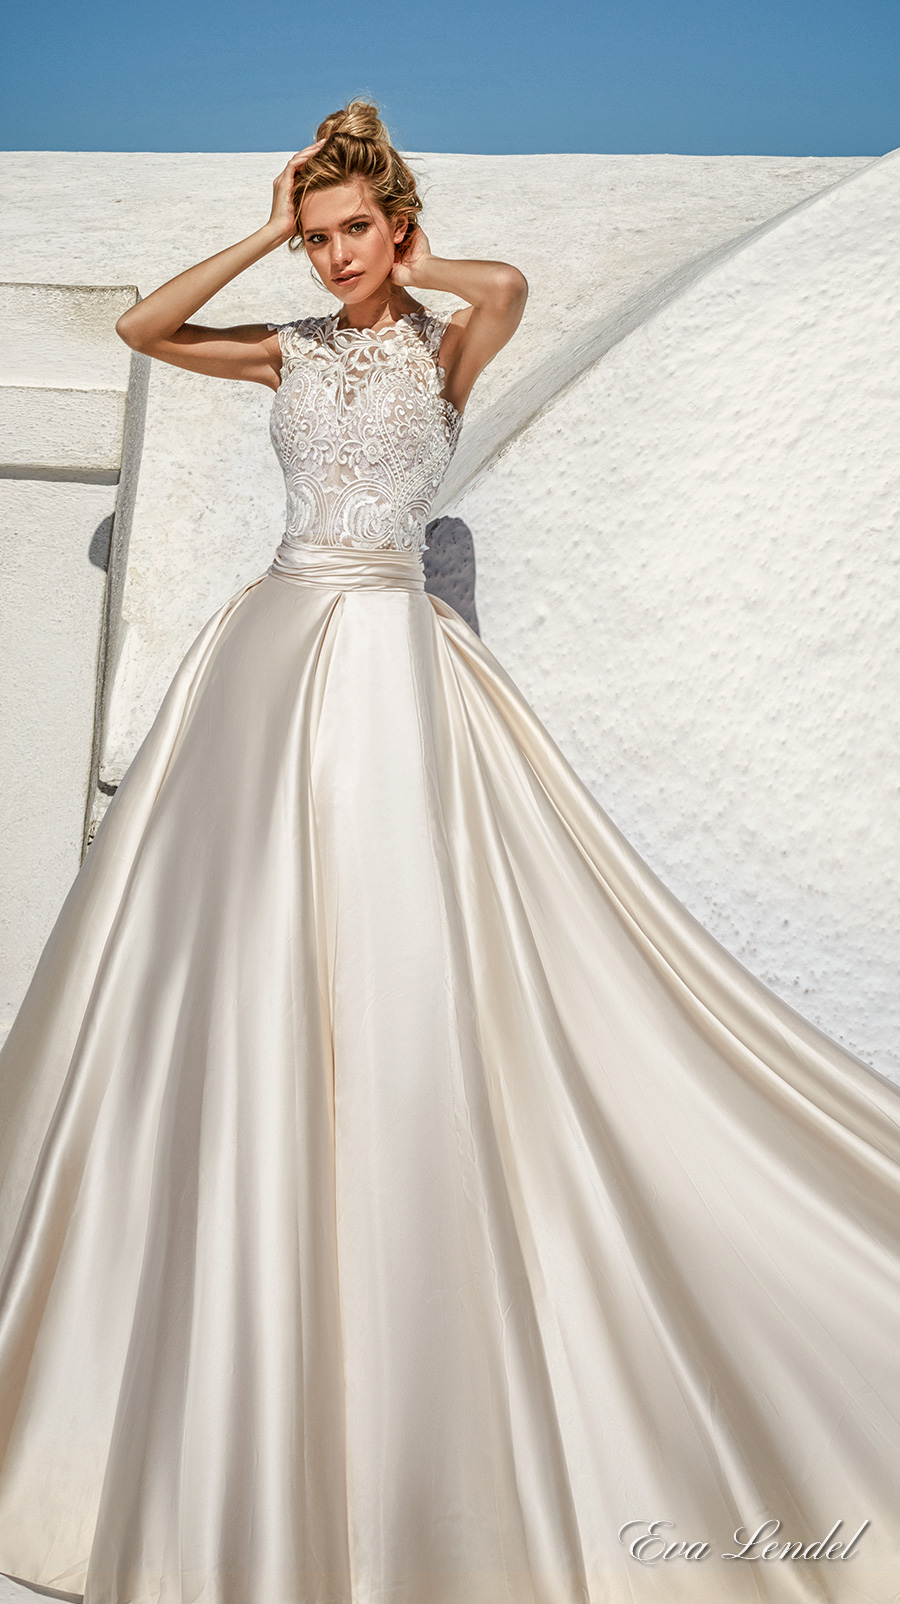 Eva lendel 2017 wedding dresses santorini bridal for Satin a line wedding dress